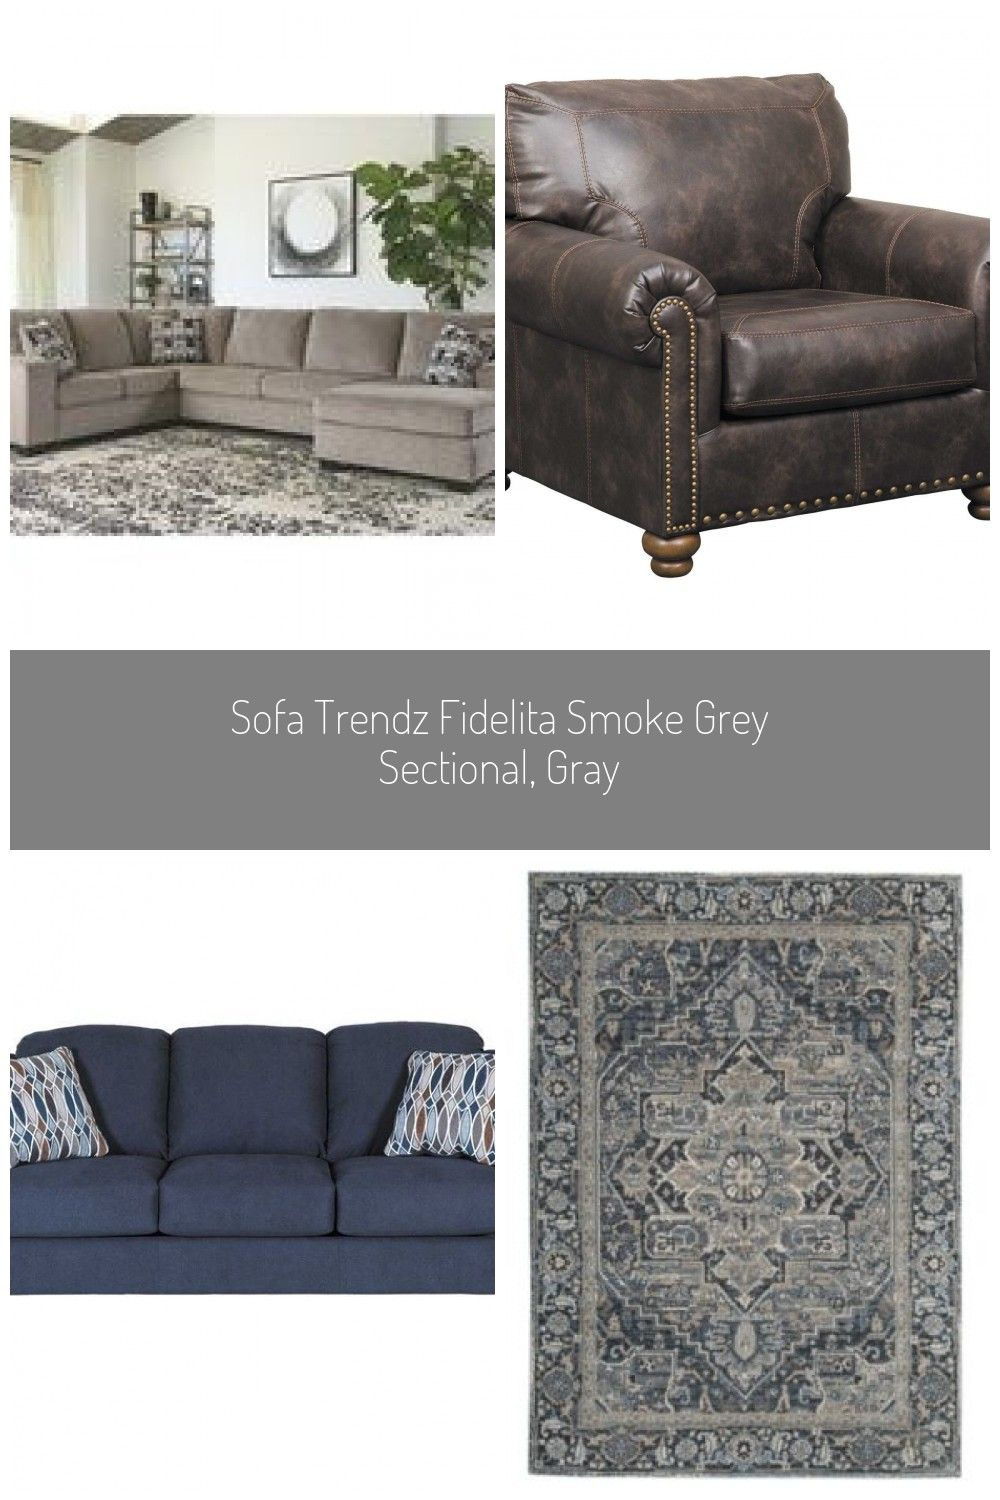 Sofa Trendz Fidelita Smoke Grey Sectional Gray Hering